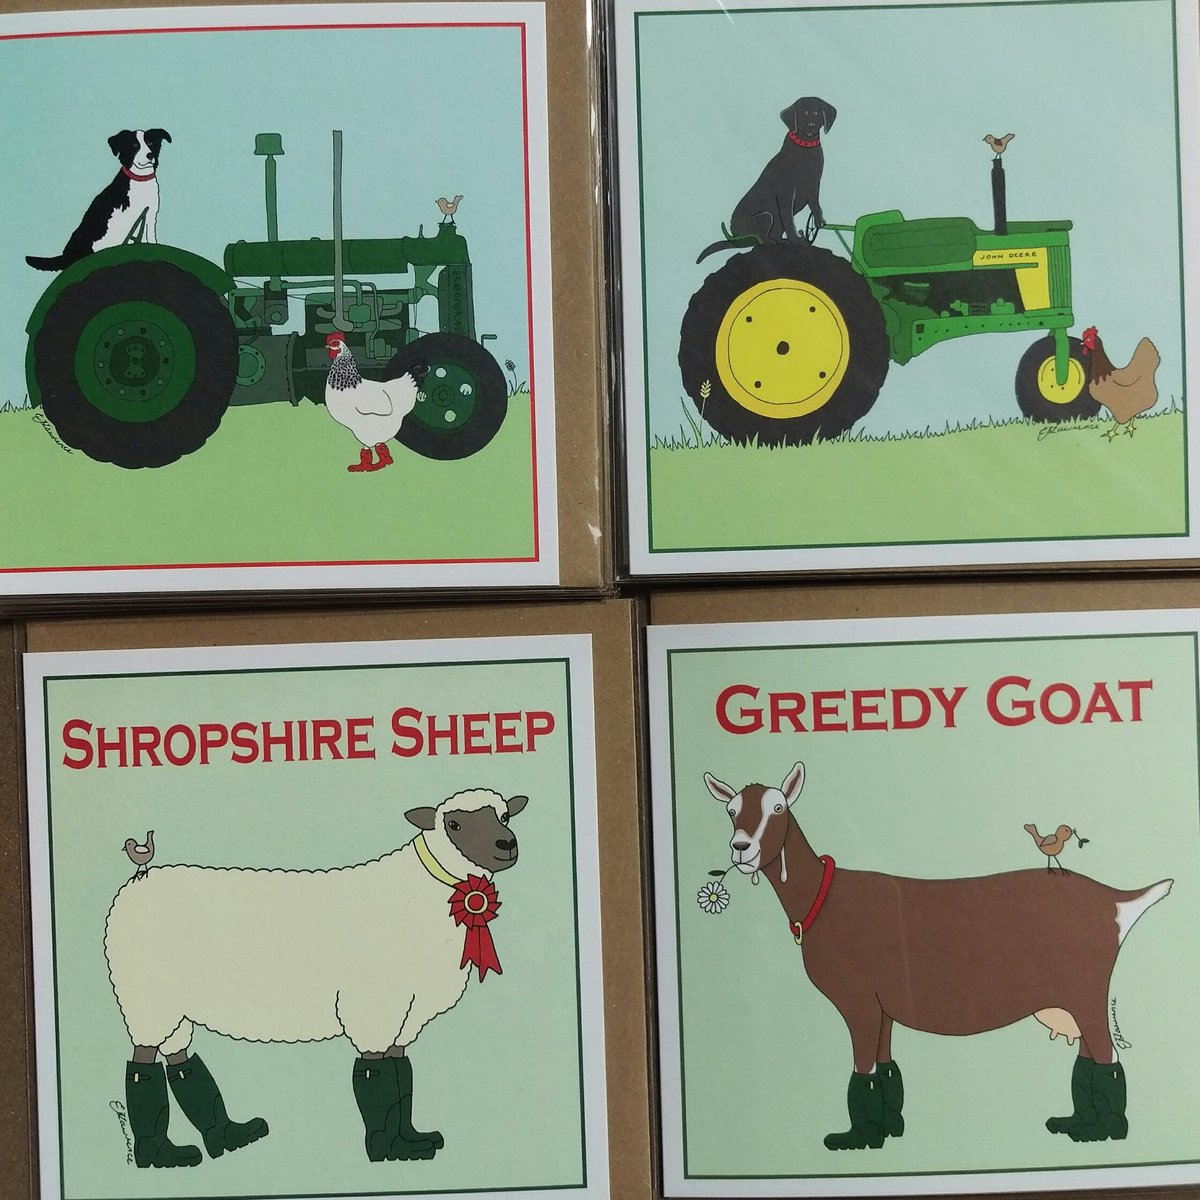 I&#39;ll be at Minsterley Show today with lots of goodies including these cards. #loveShropshire #Shrewsbury #Shropshire #today @WhatsOnShrops<br>http://pic.twitter.com/0CeMNA9aHT